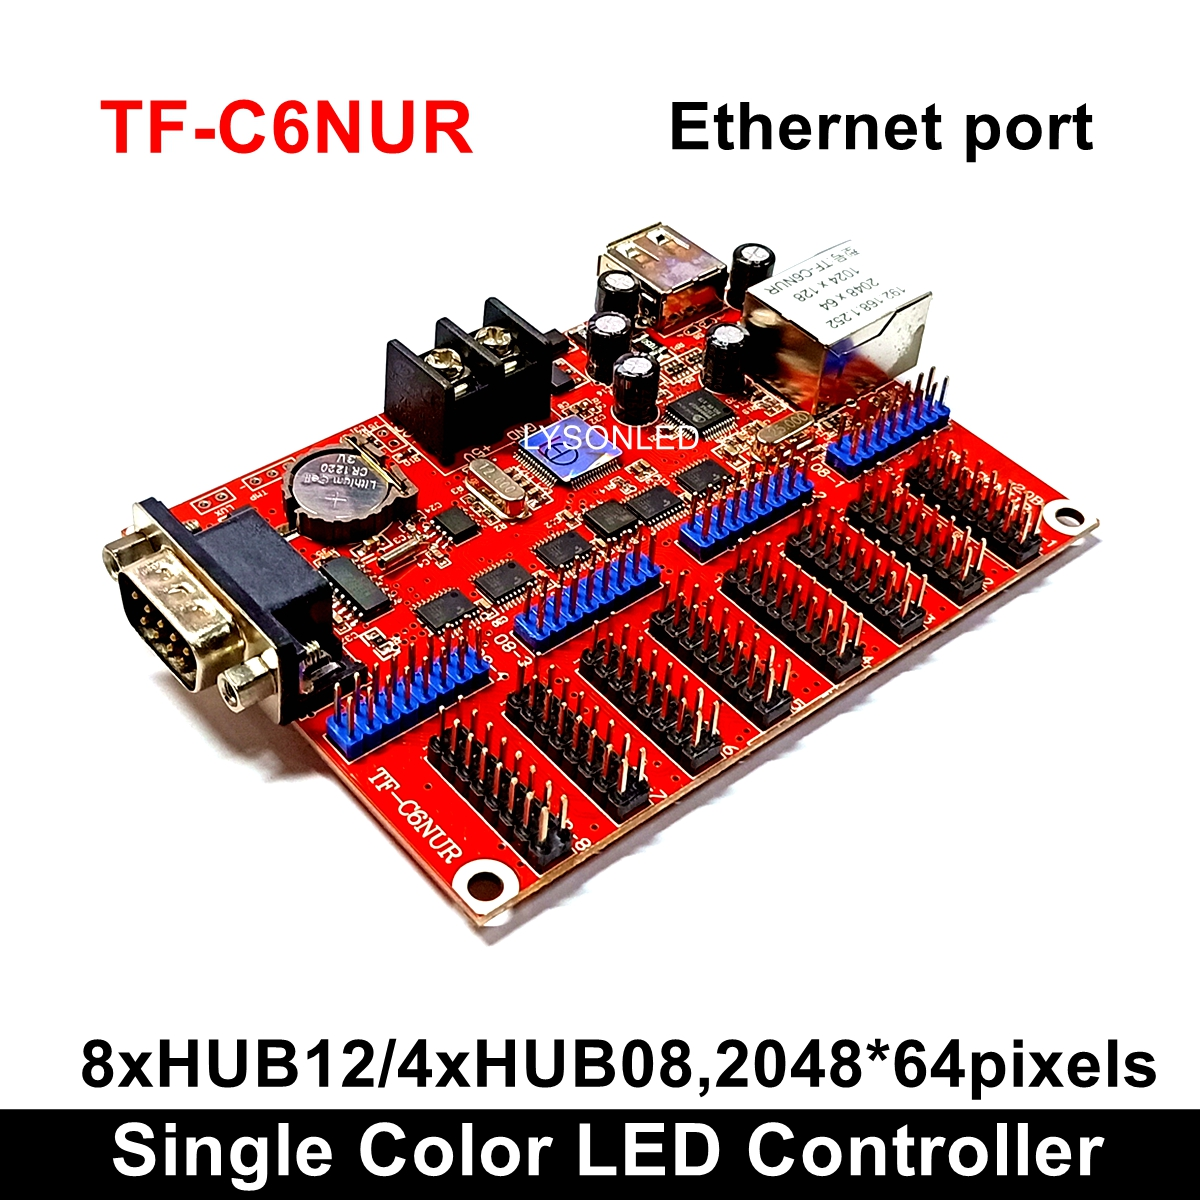 LongGreat TF-C6NUR(TF-C5NUR) LED Display Control Card With RJ45 & USB Driver & RS232 Ports